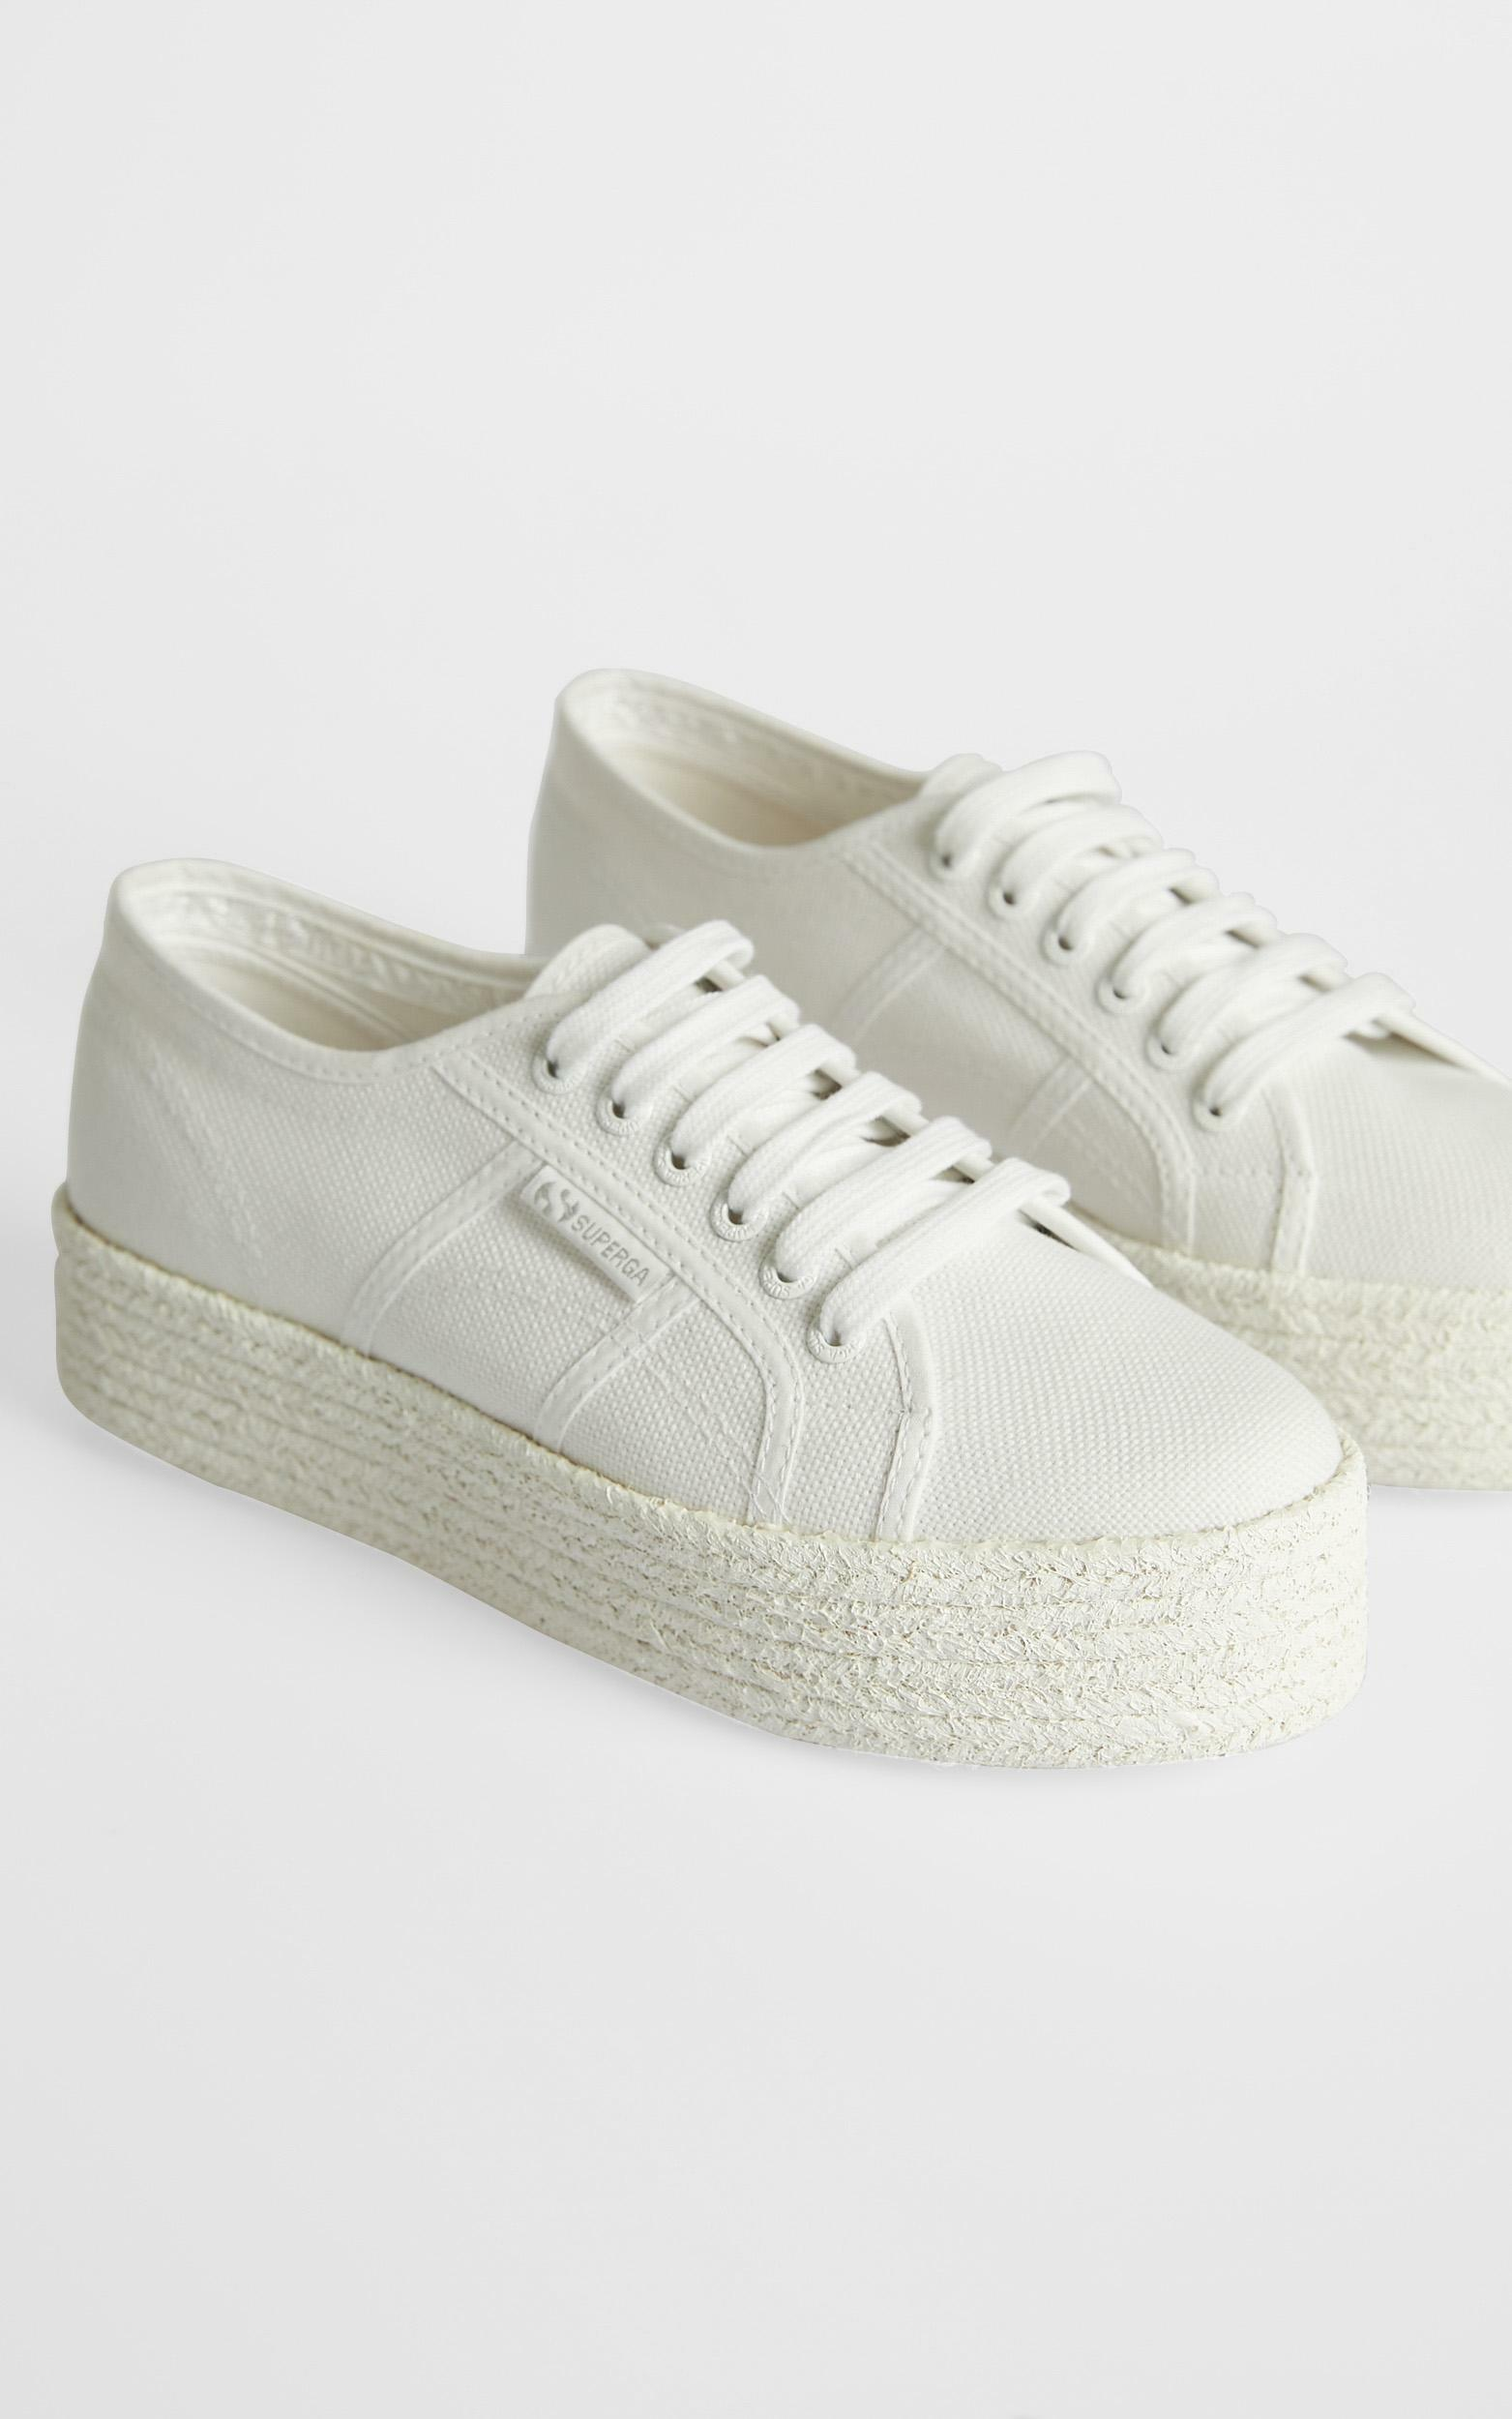 Superga - 2790 COT Color Rope in total white - 5, Clear, hi-res image number null